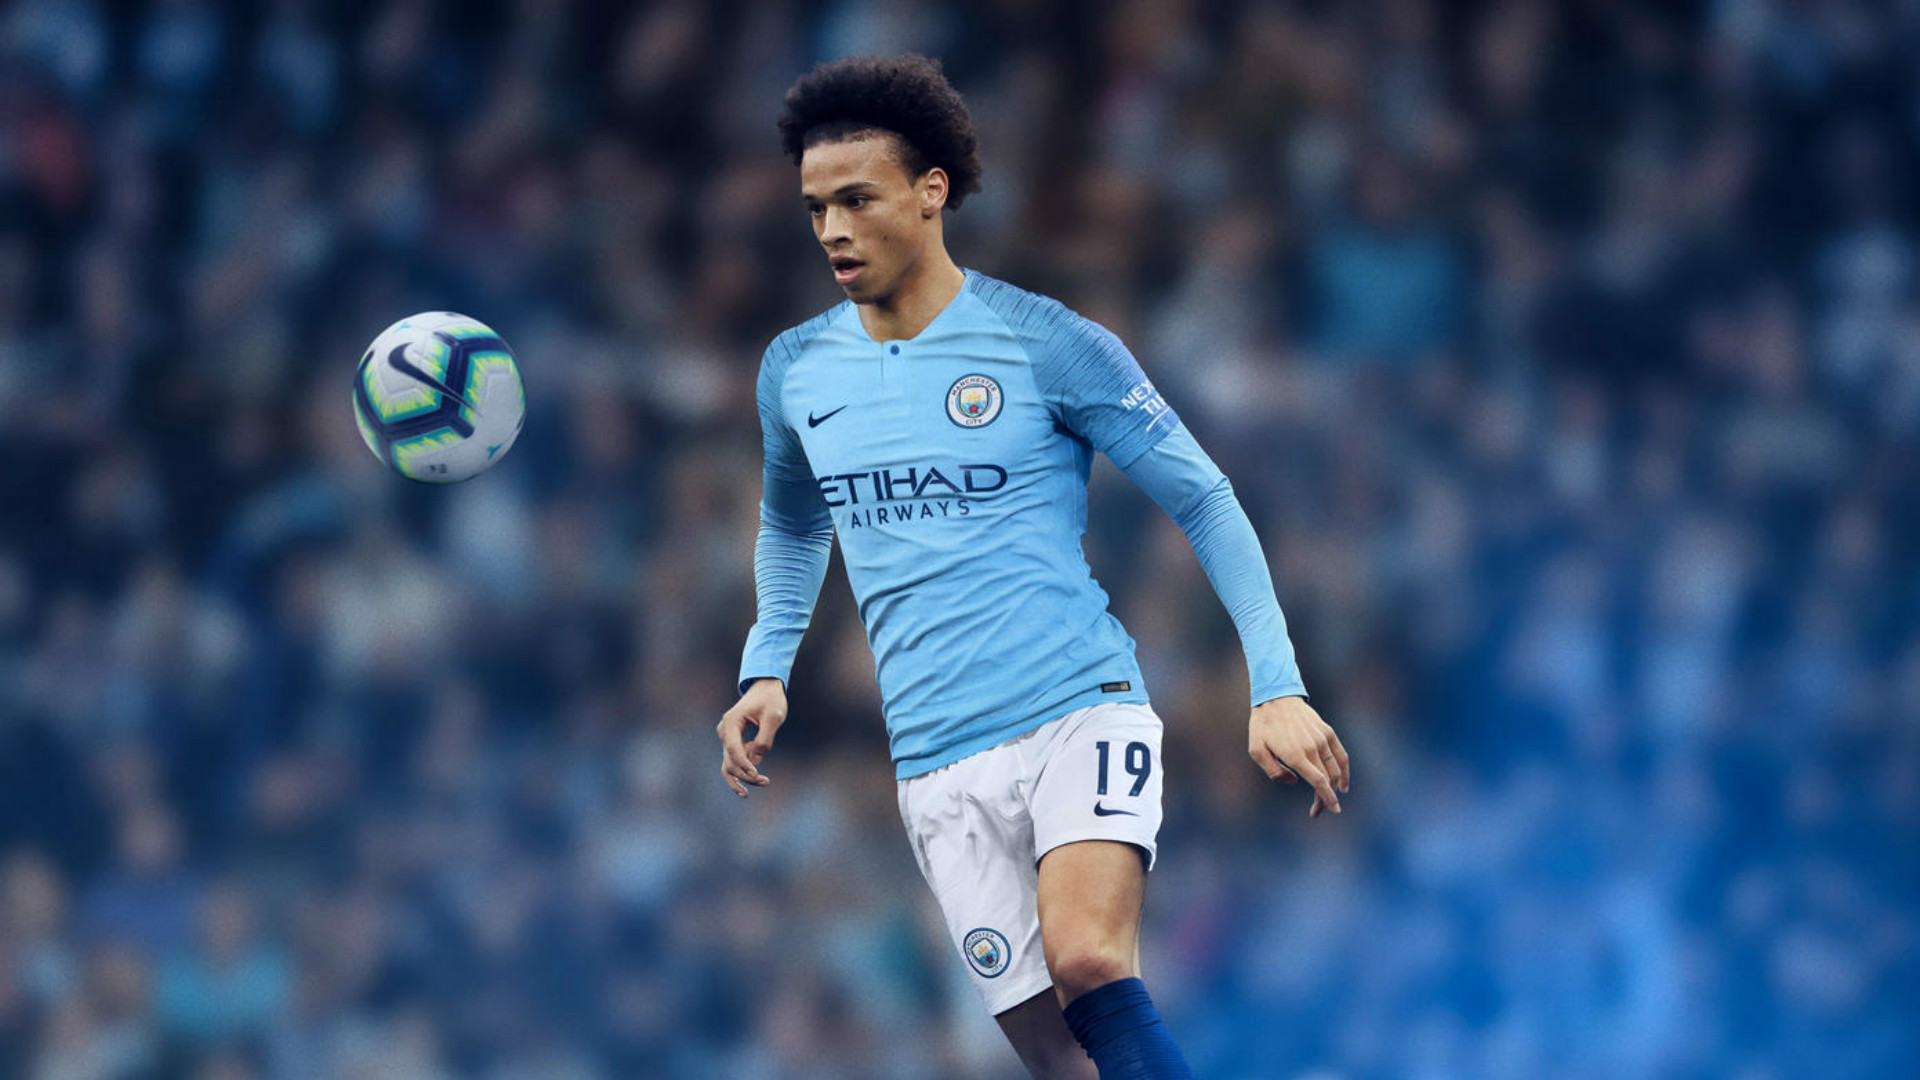 Man City unveil new 2018-19 kit and will debut it against Brighton